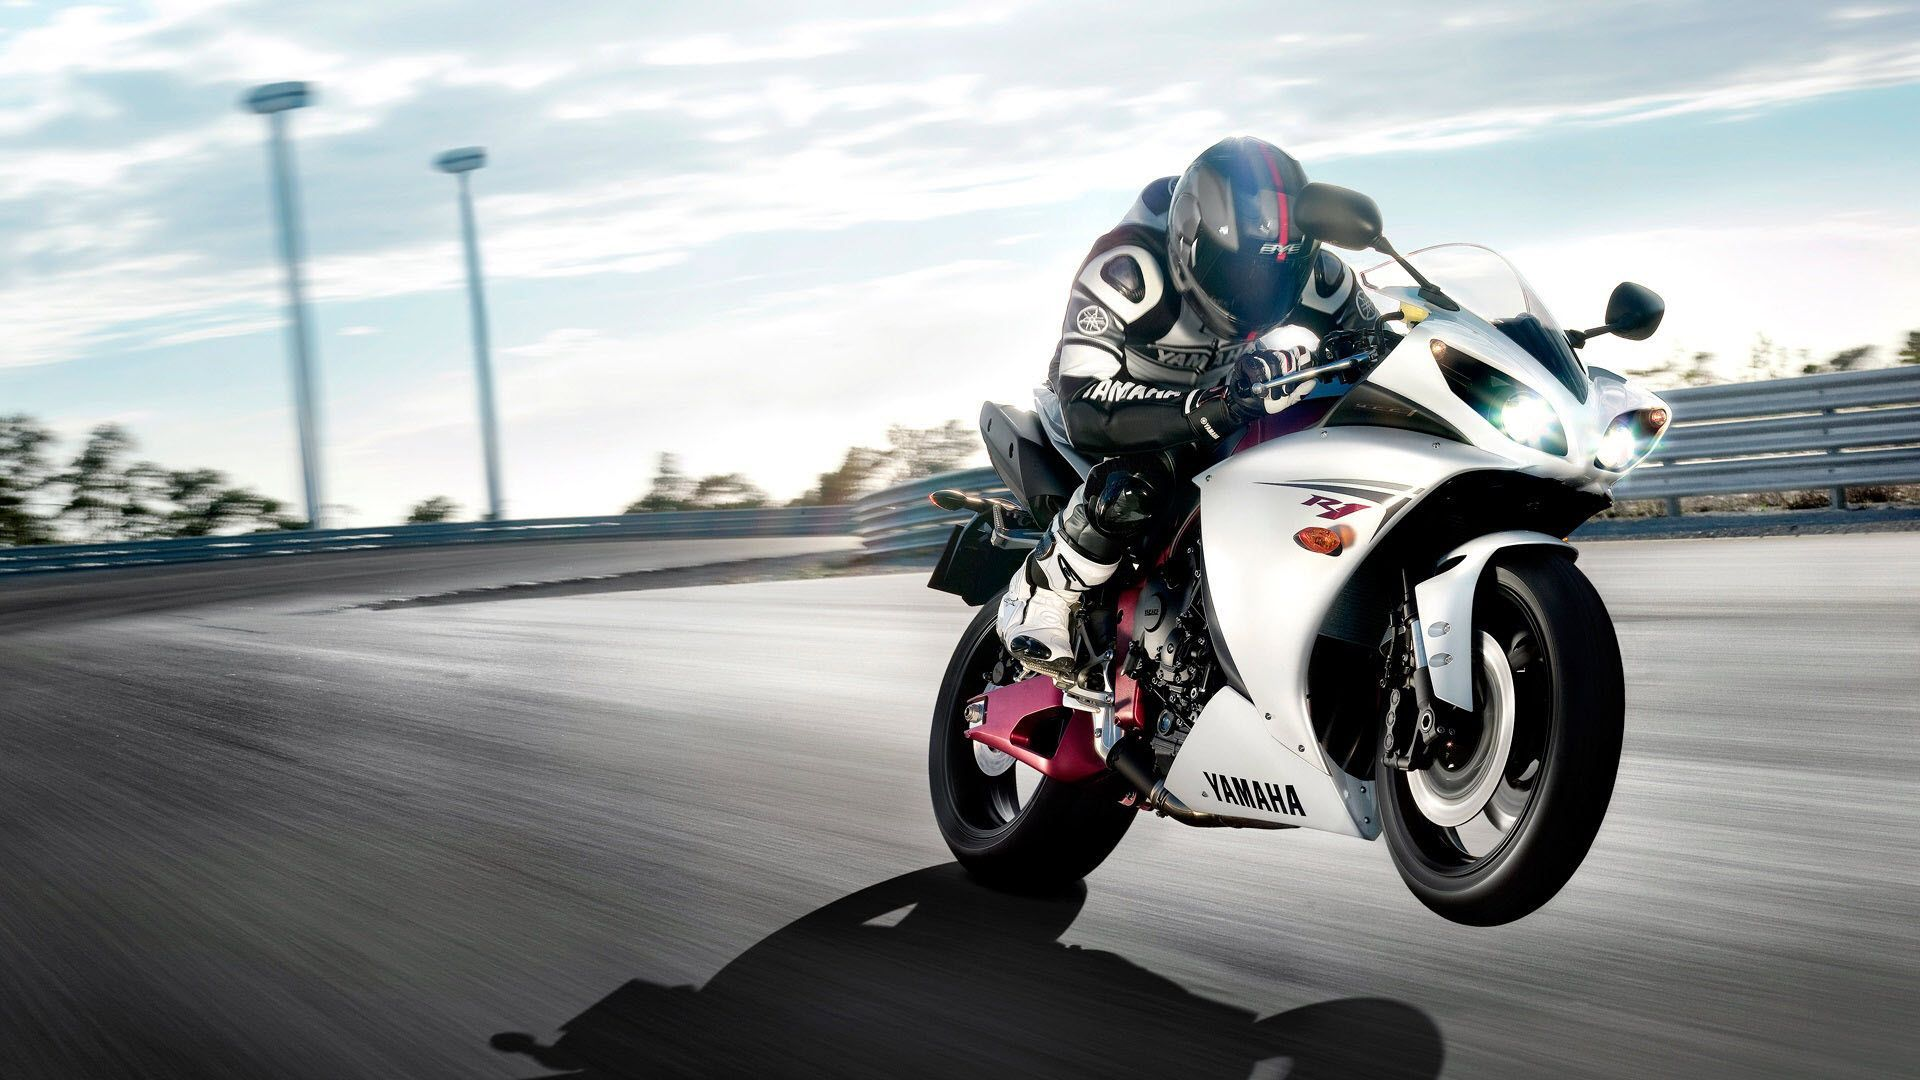 Download Hd Bike Wallpapers 1080p Gallery